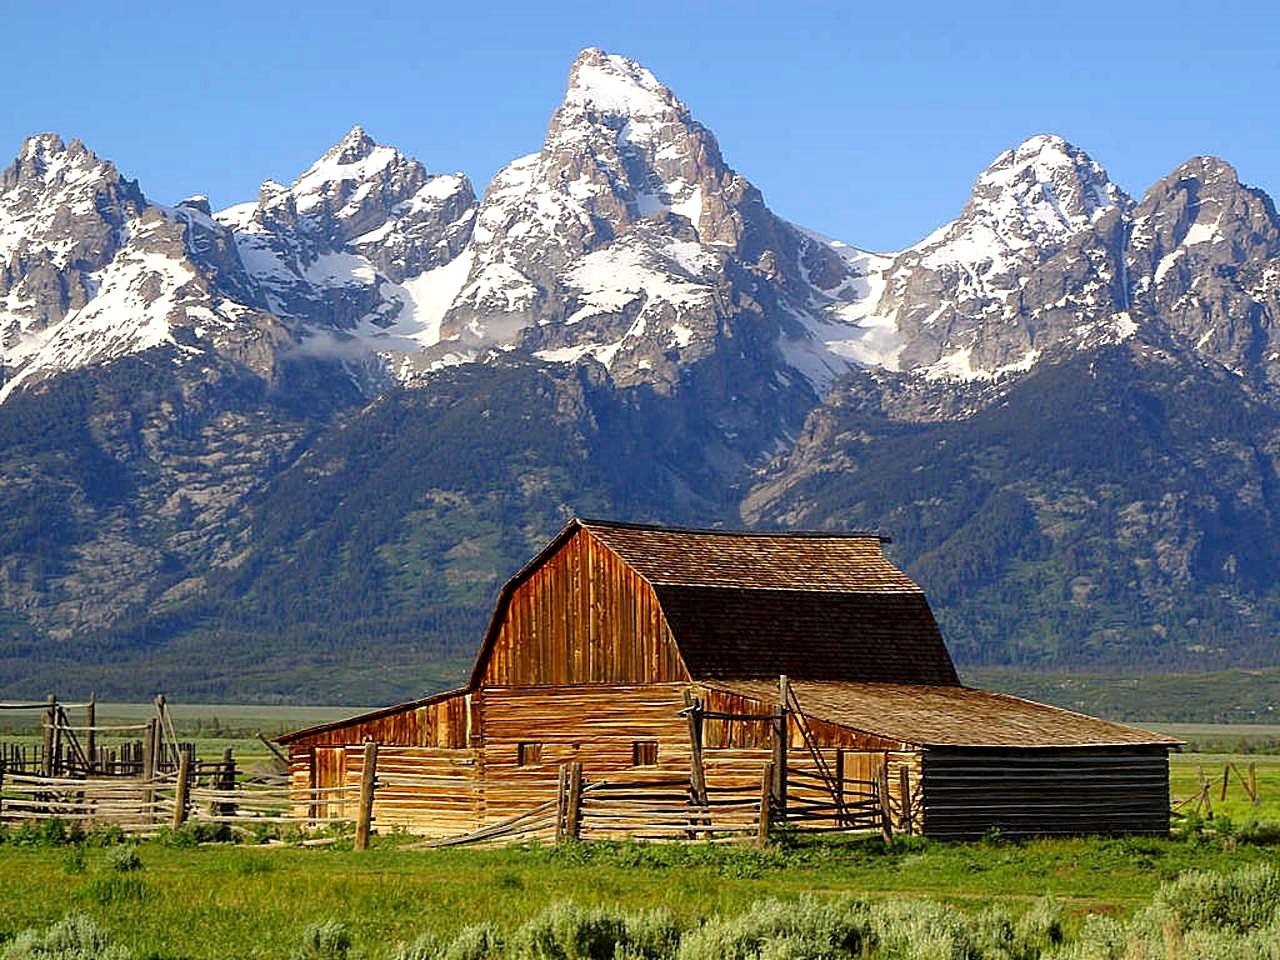 teton personals Help wanted  help wanted   teton village, wy 8/7/2018 front desk agent teton village, wy  personals rentals and housing ride line about us.